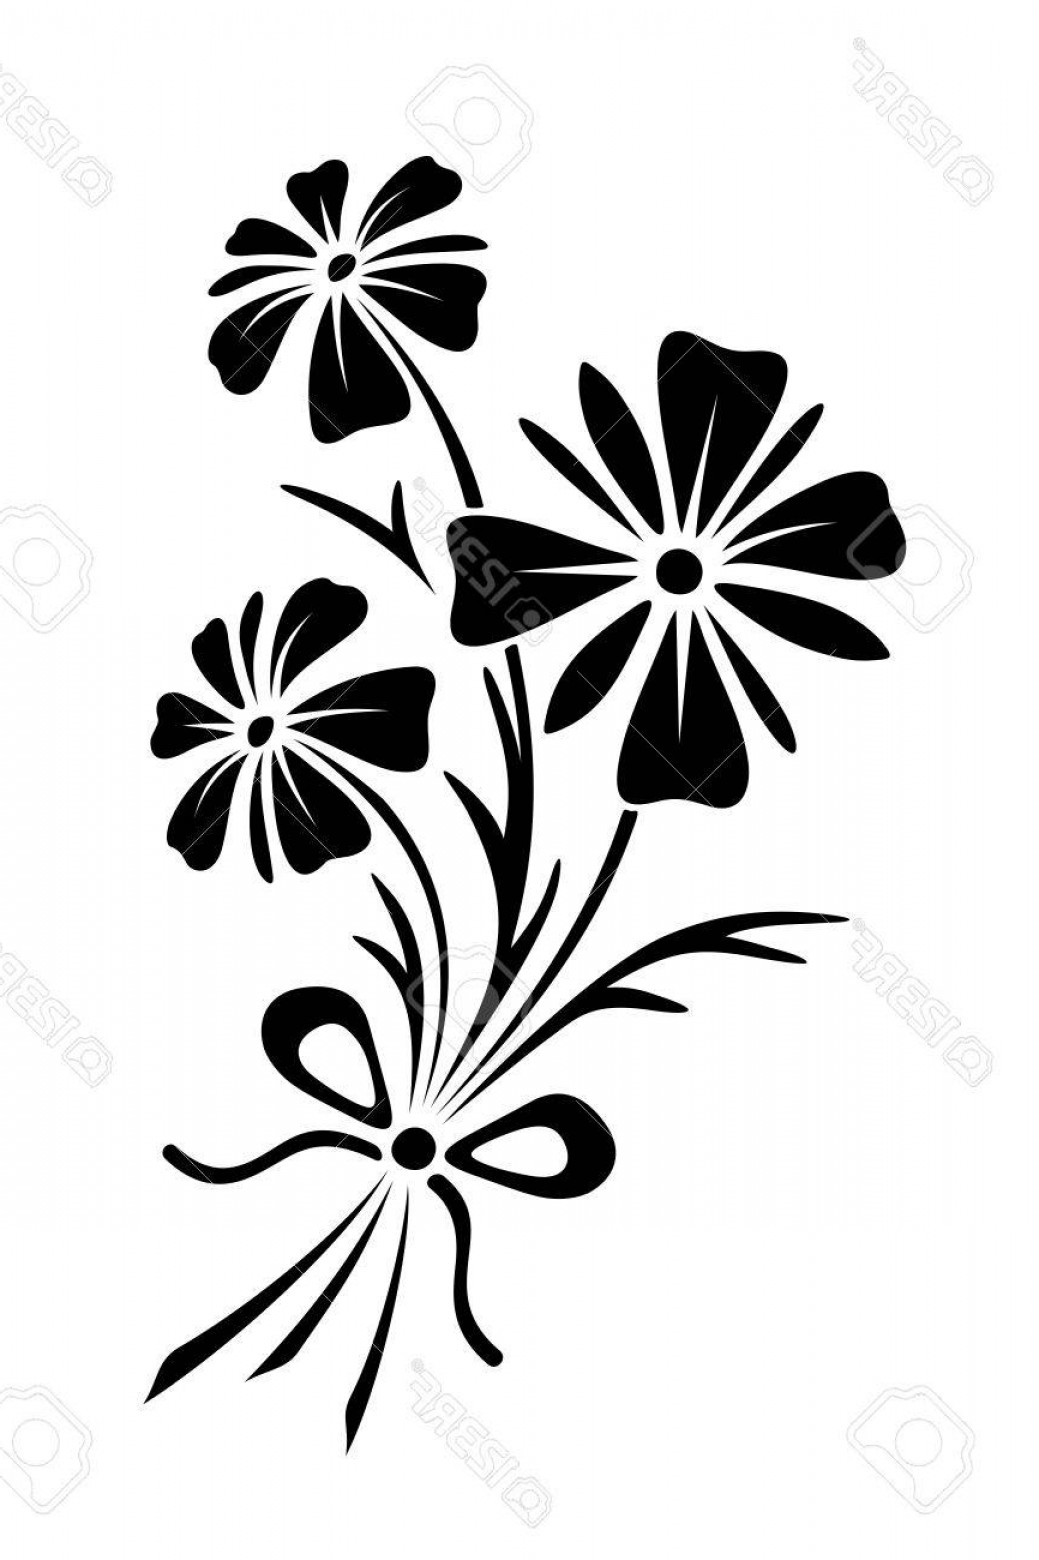 Wildflowers Outline Vector: Photostock Vector Vector Black Silhouette Of Bouquet Of Three Wild Flowers